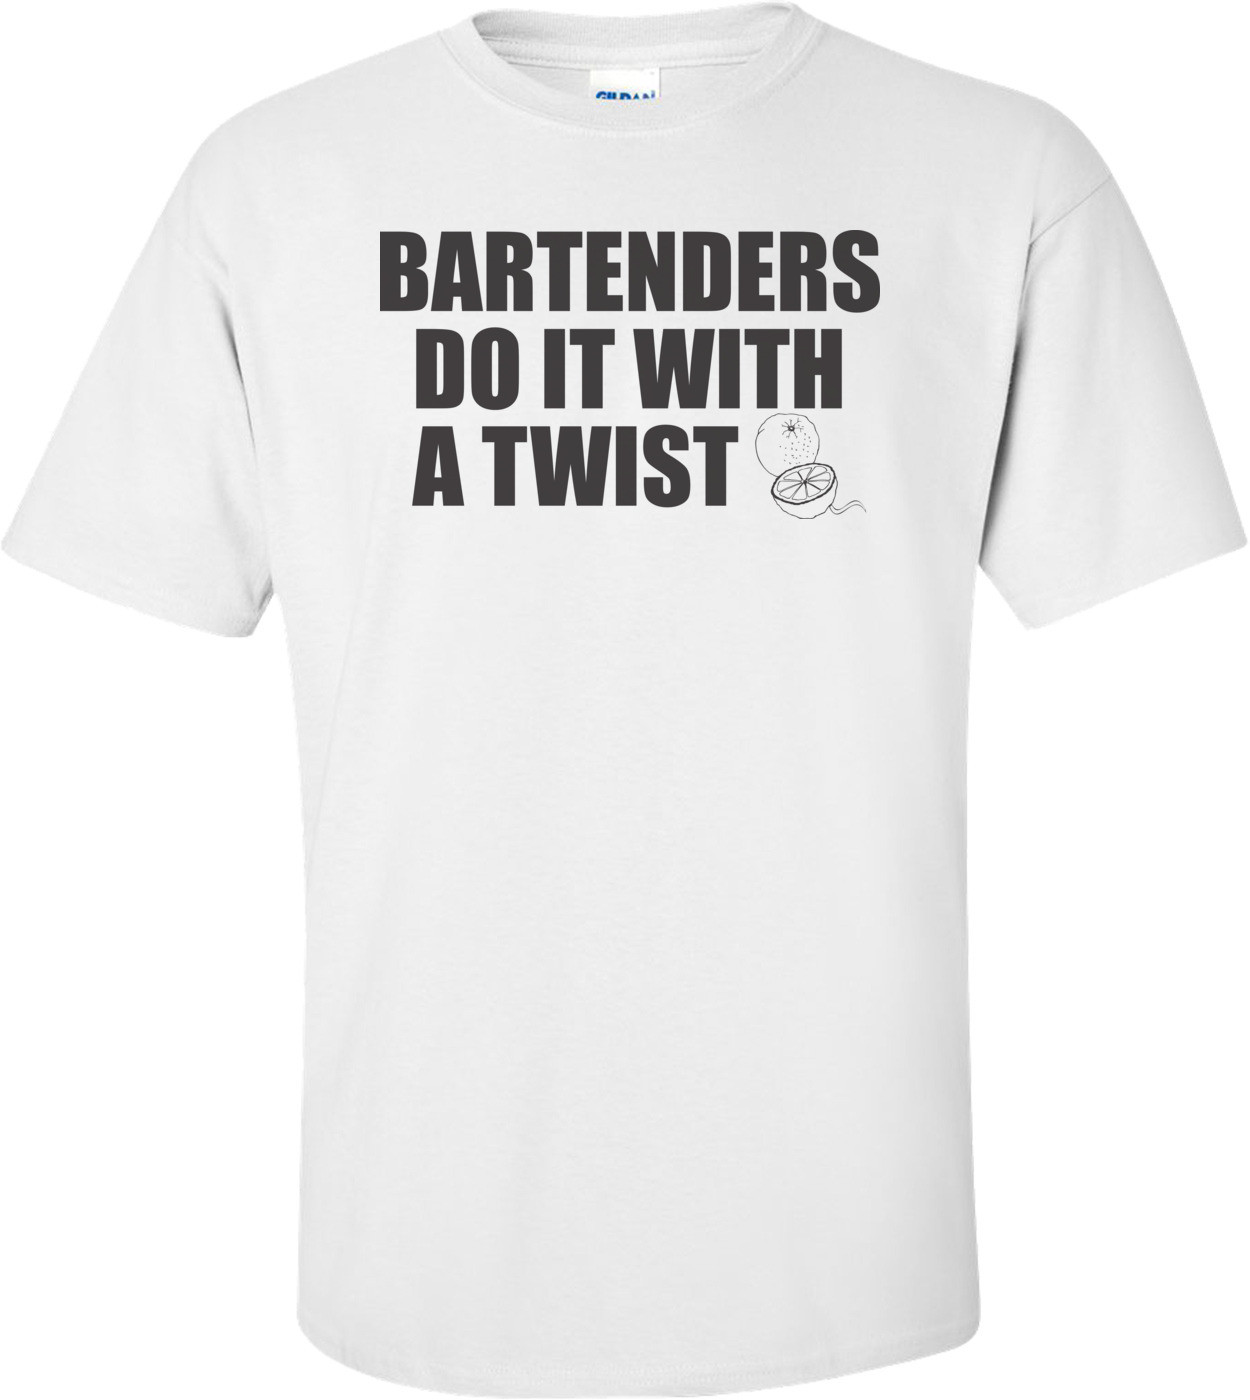 Bartenders Do It With A Twist T-shirt